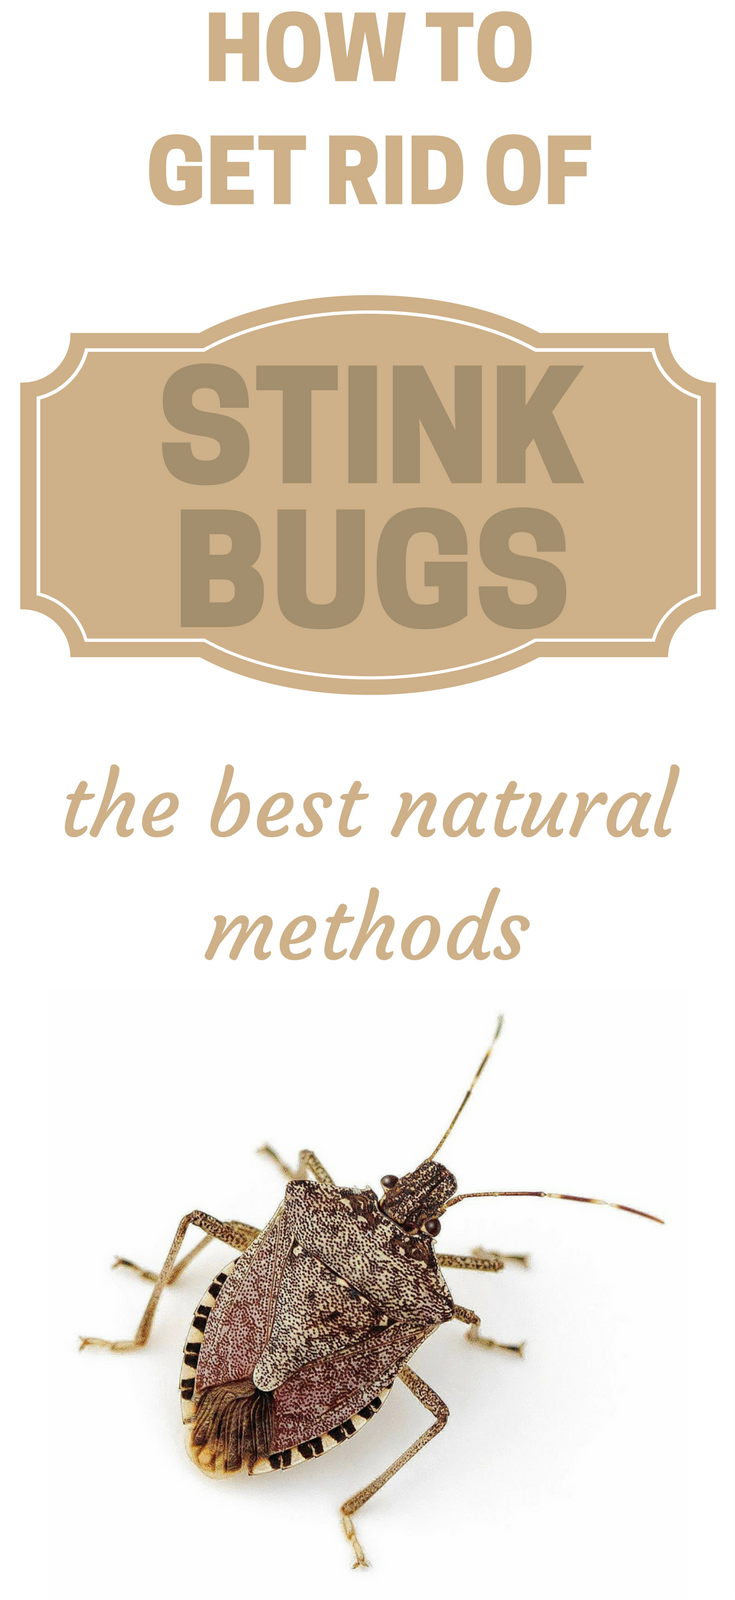 how-to-get-rid-of-stink-bugs-the-best-natural-methods | Garden ...